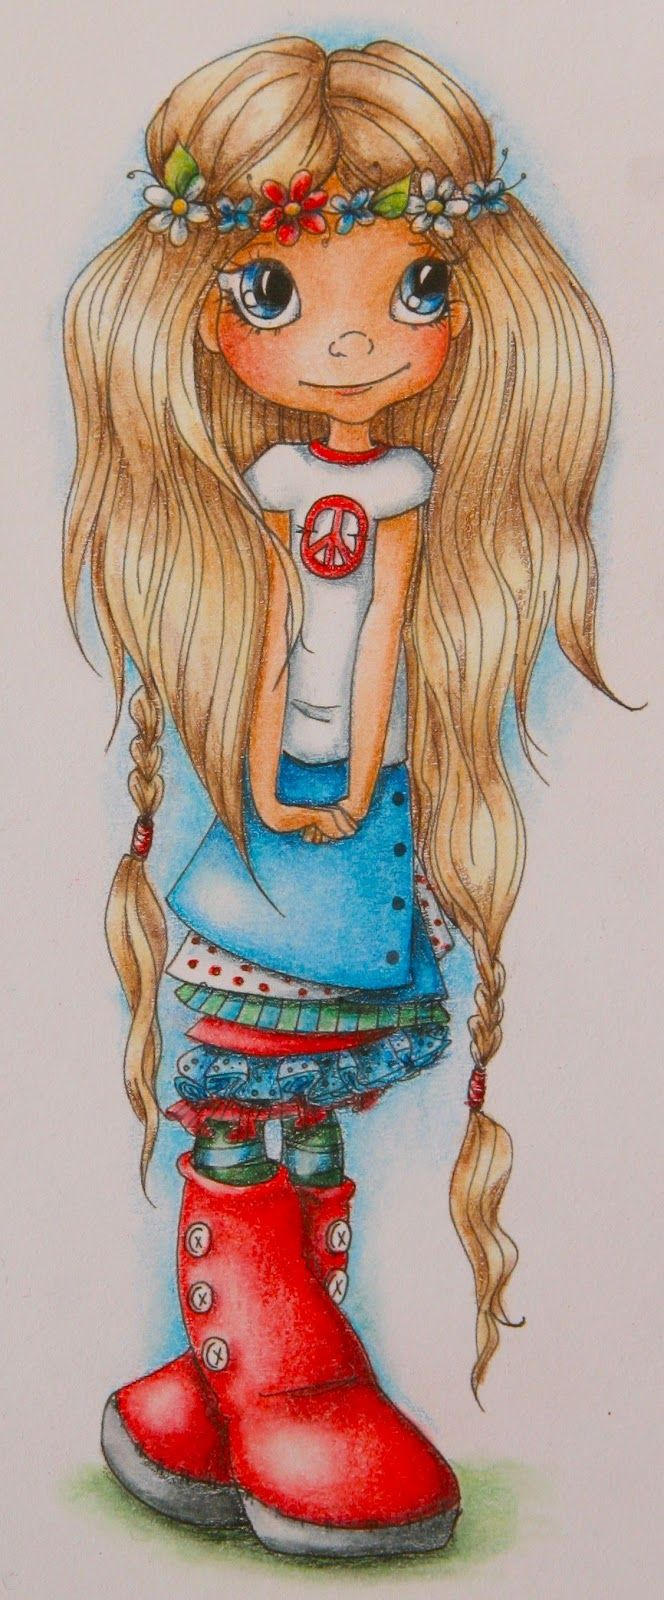 I am a lovable Hippie-chic ღ♡❤♡ღ indeed!